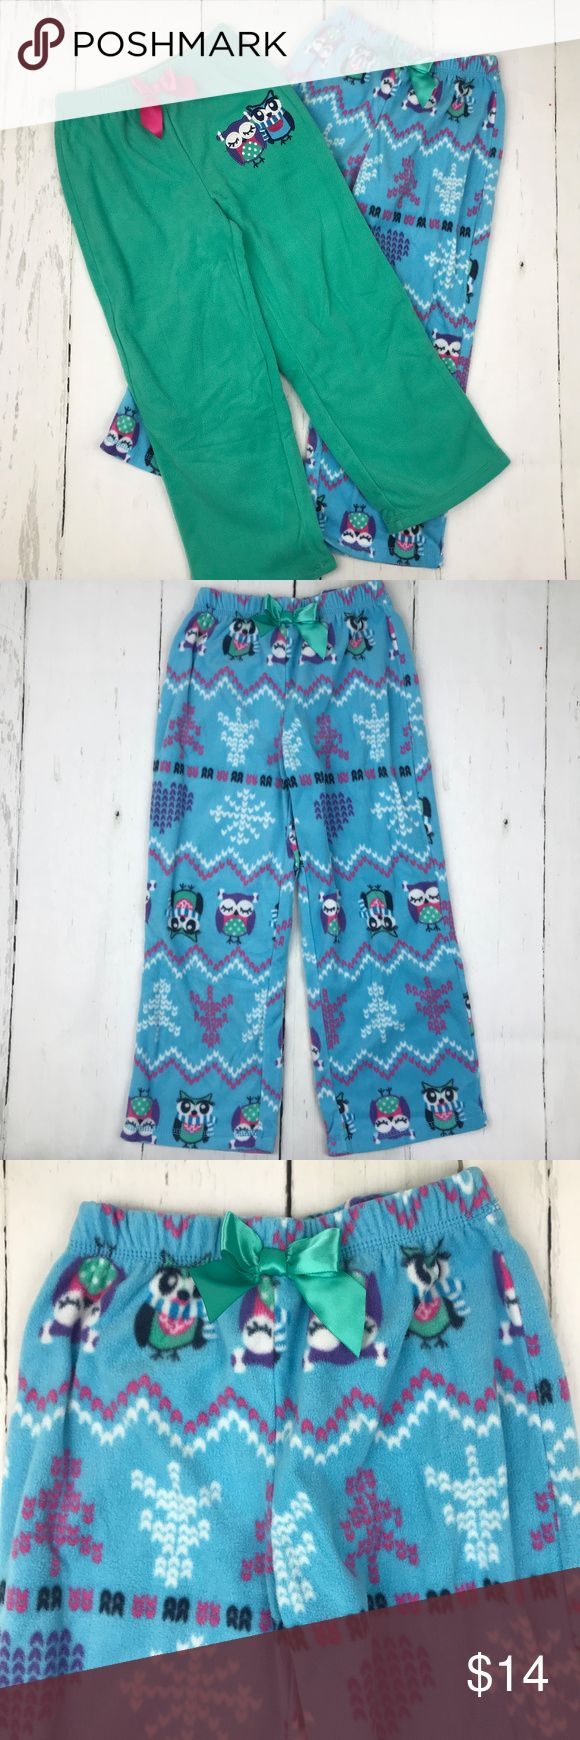 Girls Set of 2 Fleece Pajama Pants Size 7 This listing is for the set of 2 fleece pajama pants. They are new without tags and have never been worn! Elastic waist bands on both, with satin decorative tie. The blue pair has the owl designs printed on the fleece and the green pair has the two embroidered owls on the hip.   Flame resistant sleepwear.  100% polyester.  Size 7. Pajamas Pajama Bottoms